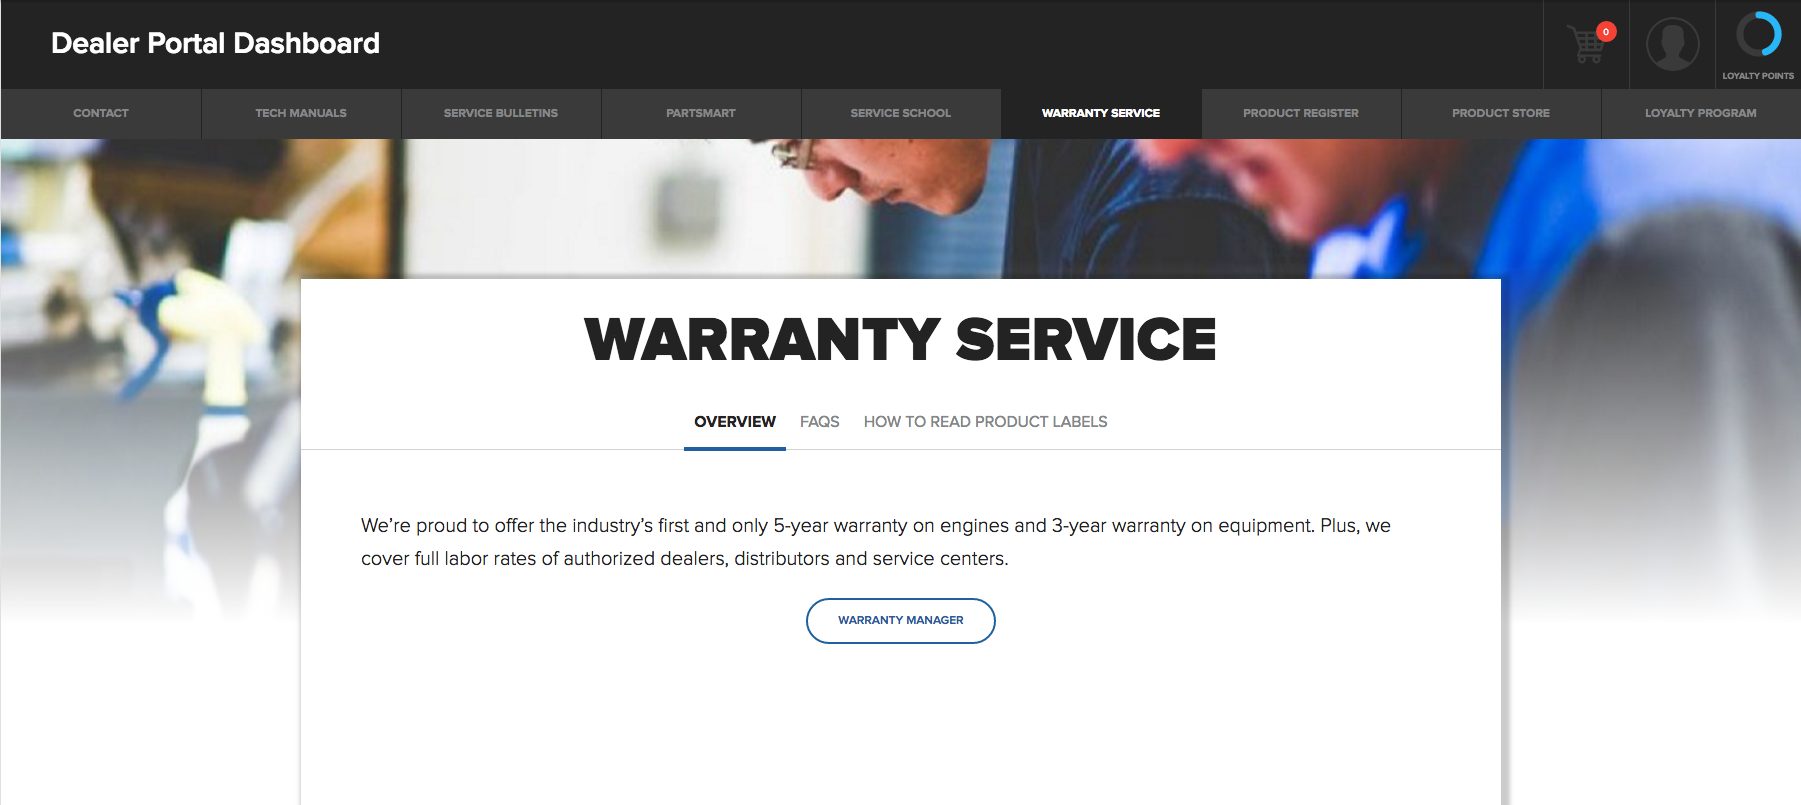 warranty- overview.png